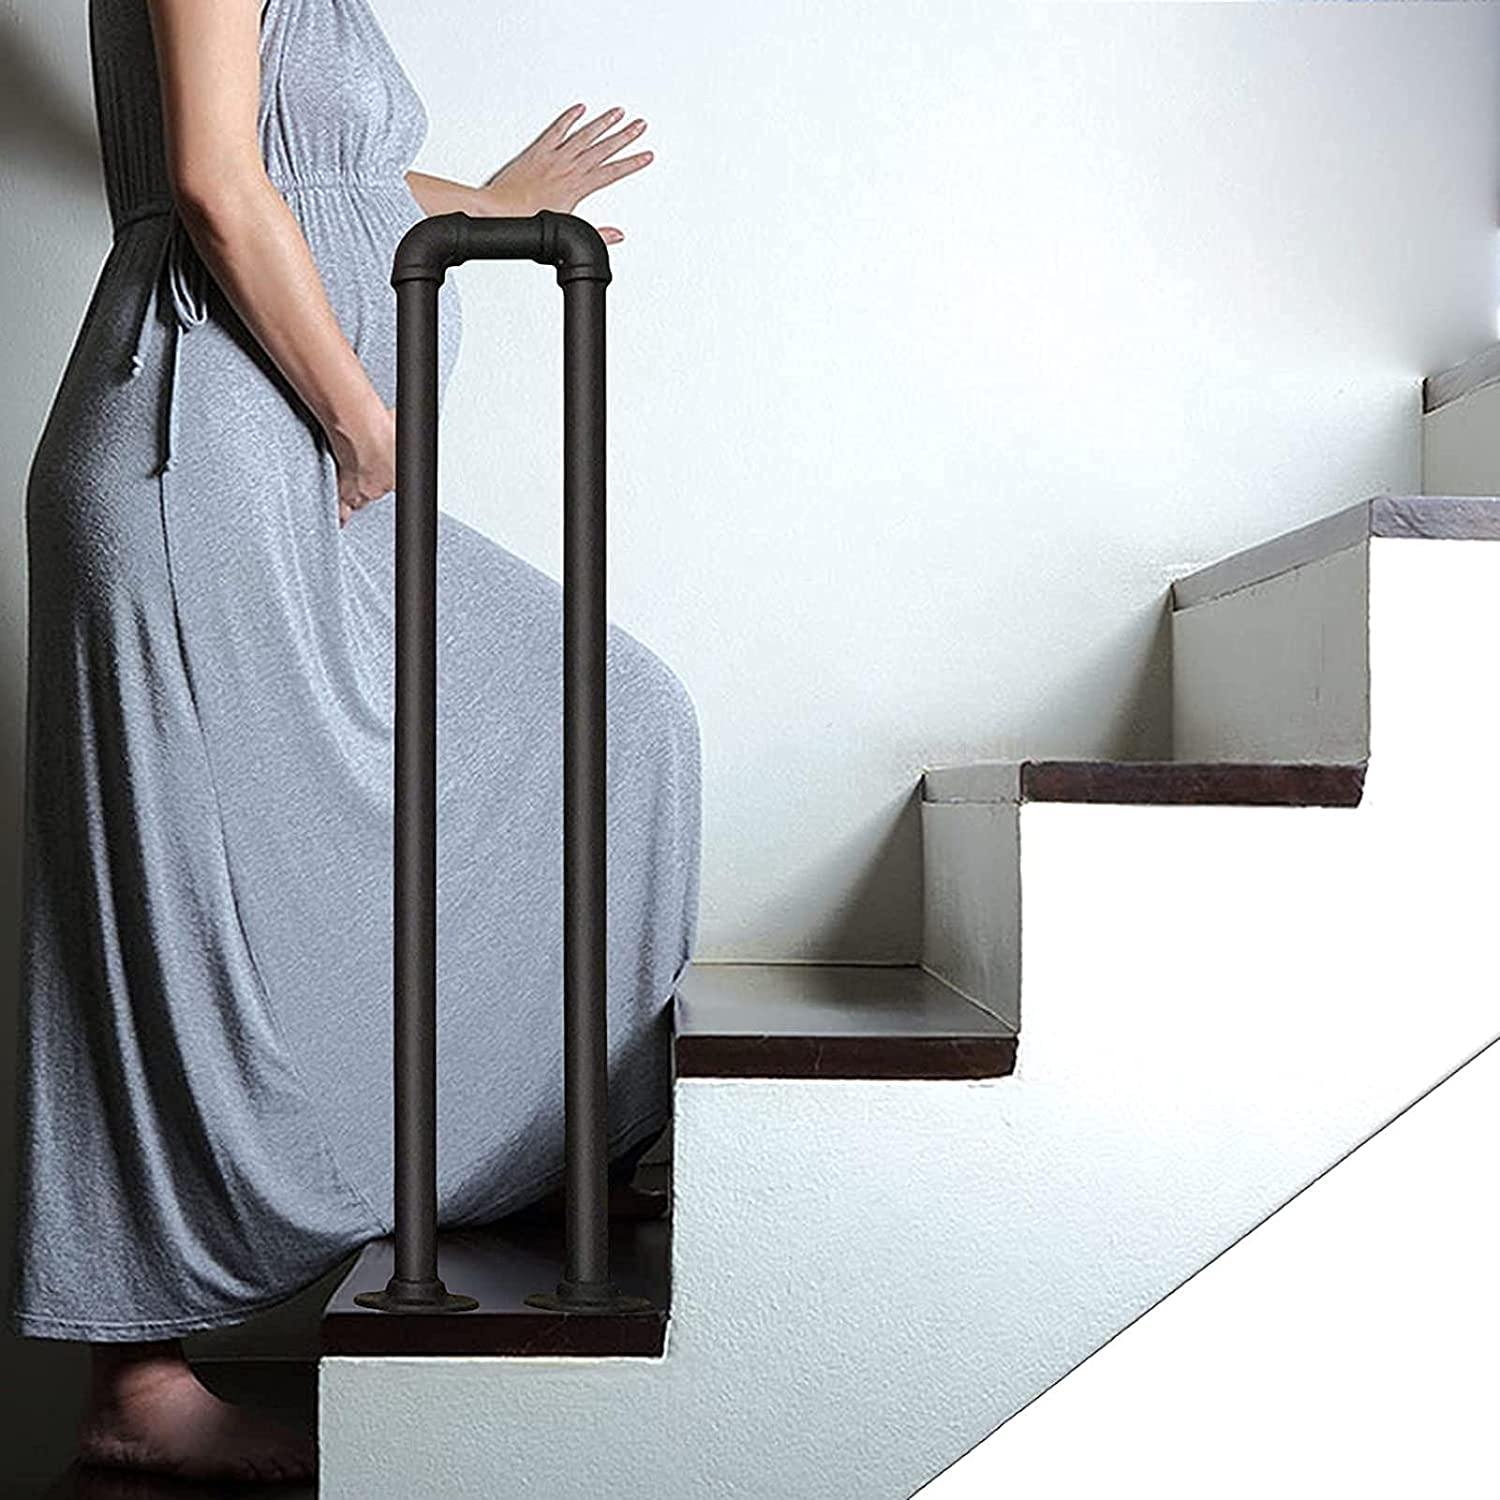 service CXSMKP Stair Max 73% OFF Handrails Safety Non-Slip Picket Wrought